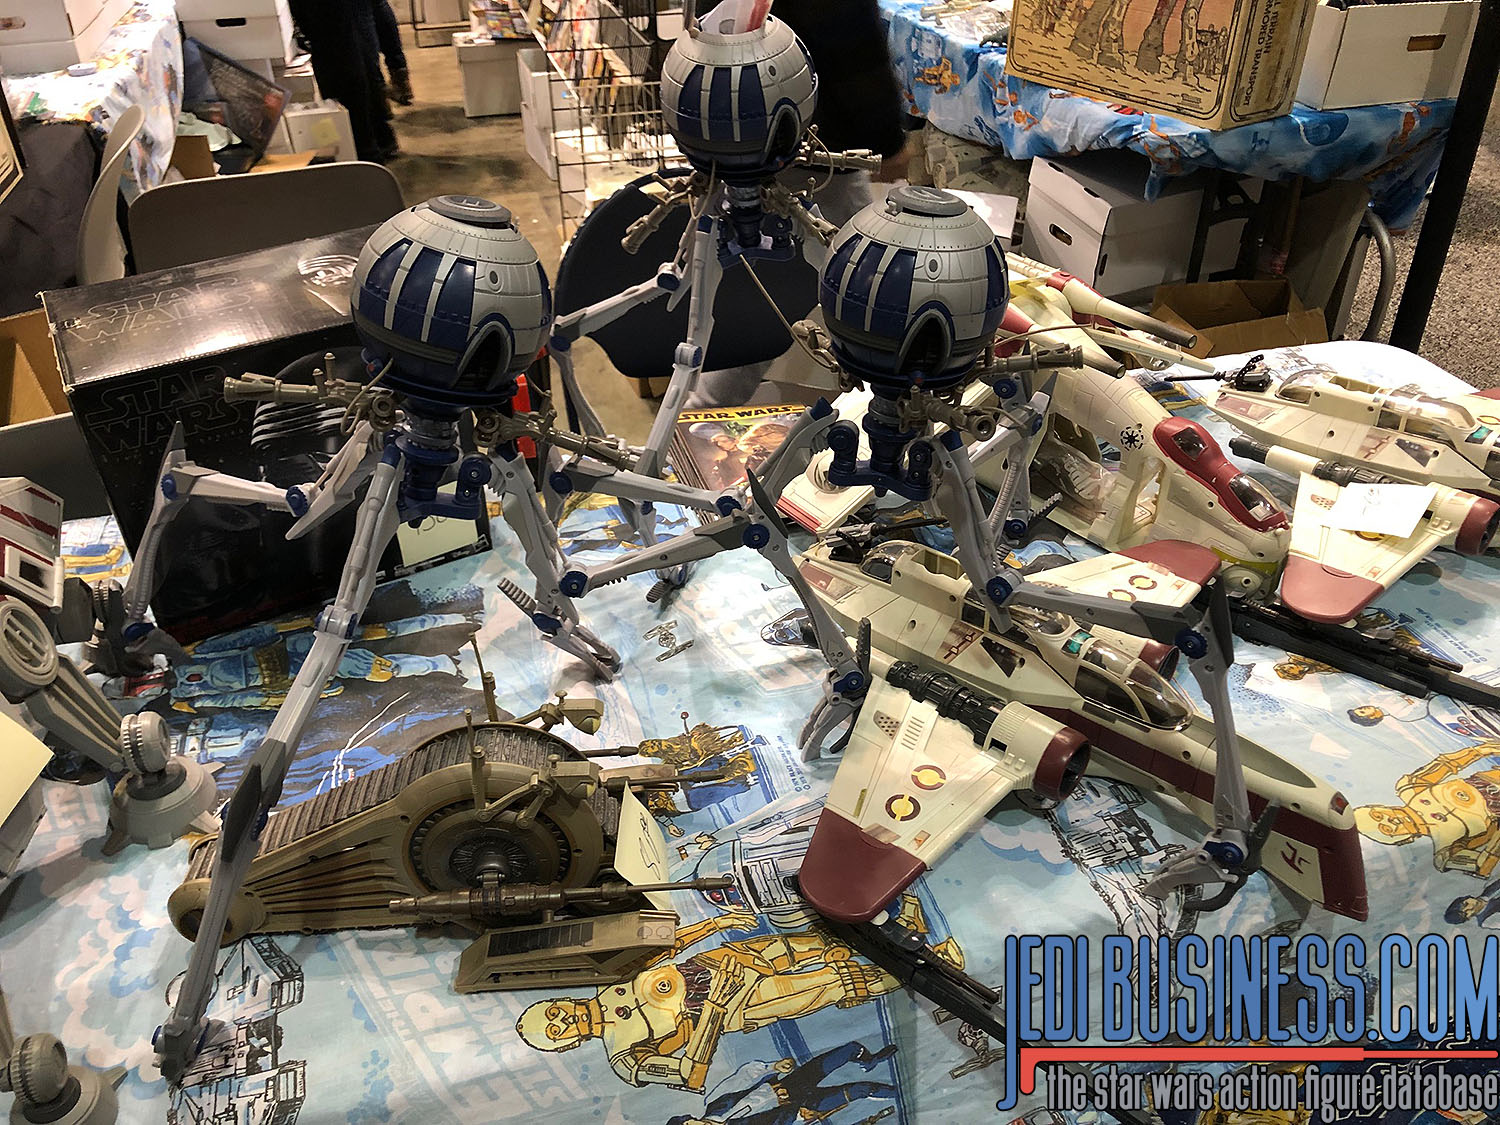 Star Wars Celebration Chicago 2019 - Show Floor